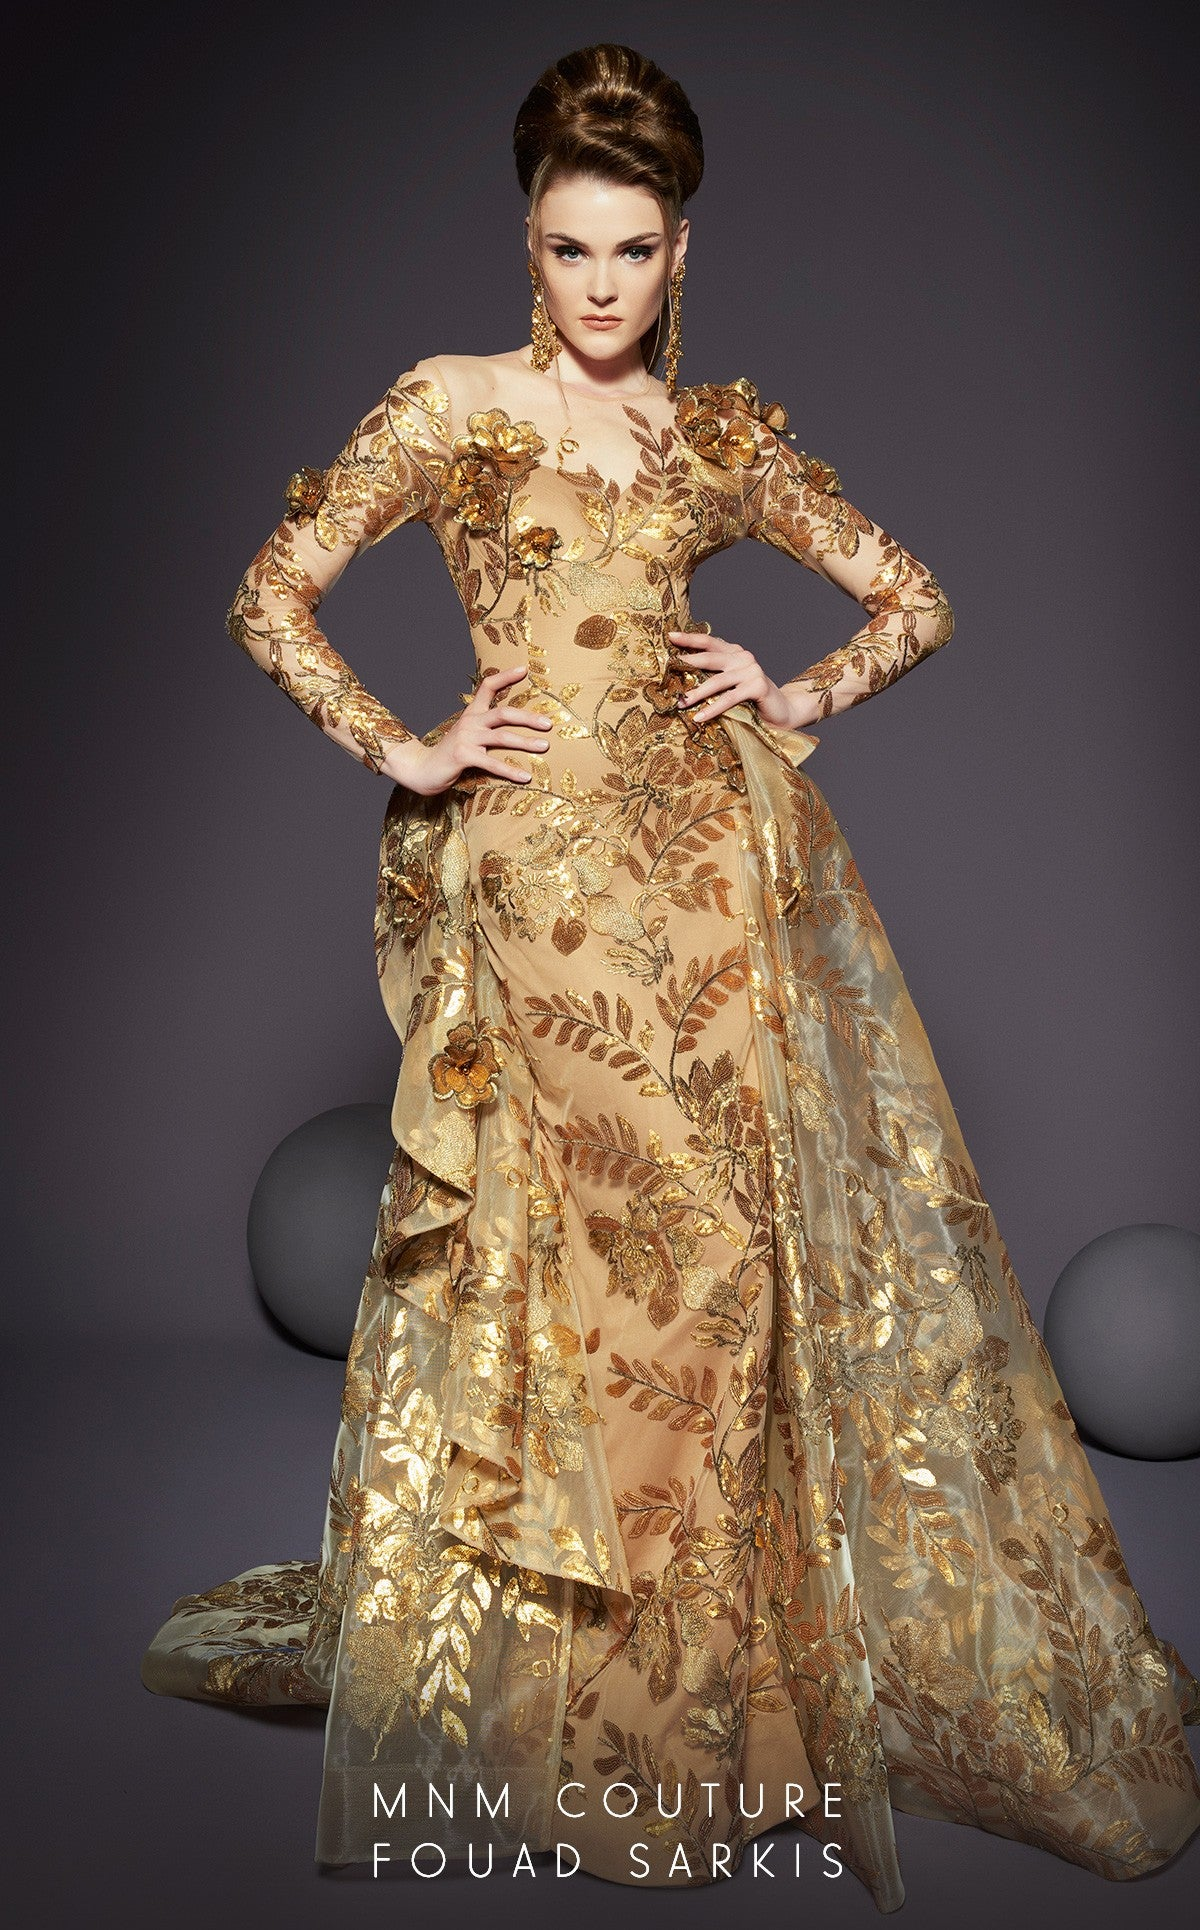 af7ae97c496 MNM COUTURE BY FOUAD SARKIS 2463 – Dody s Dresses